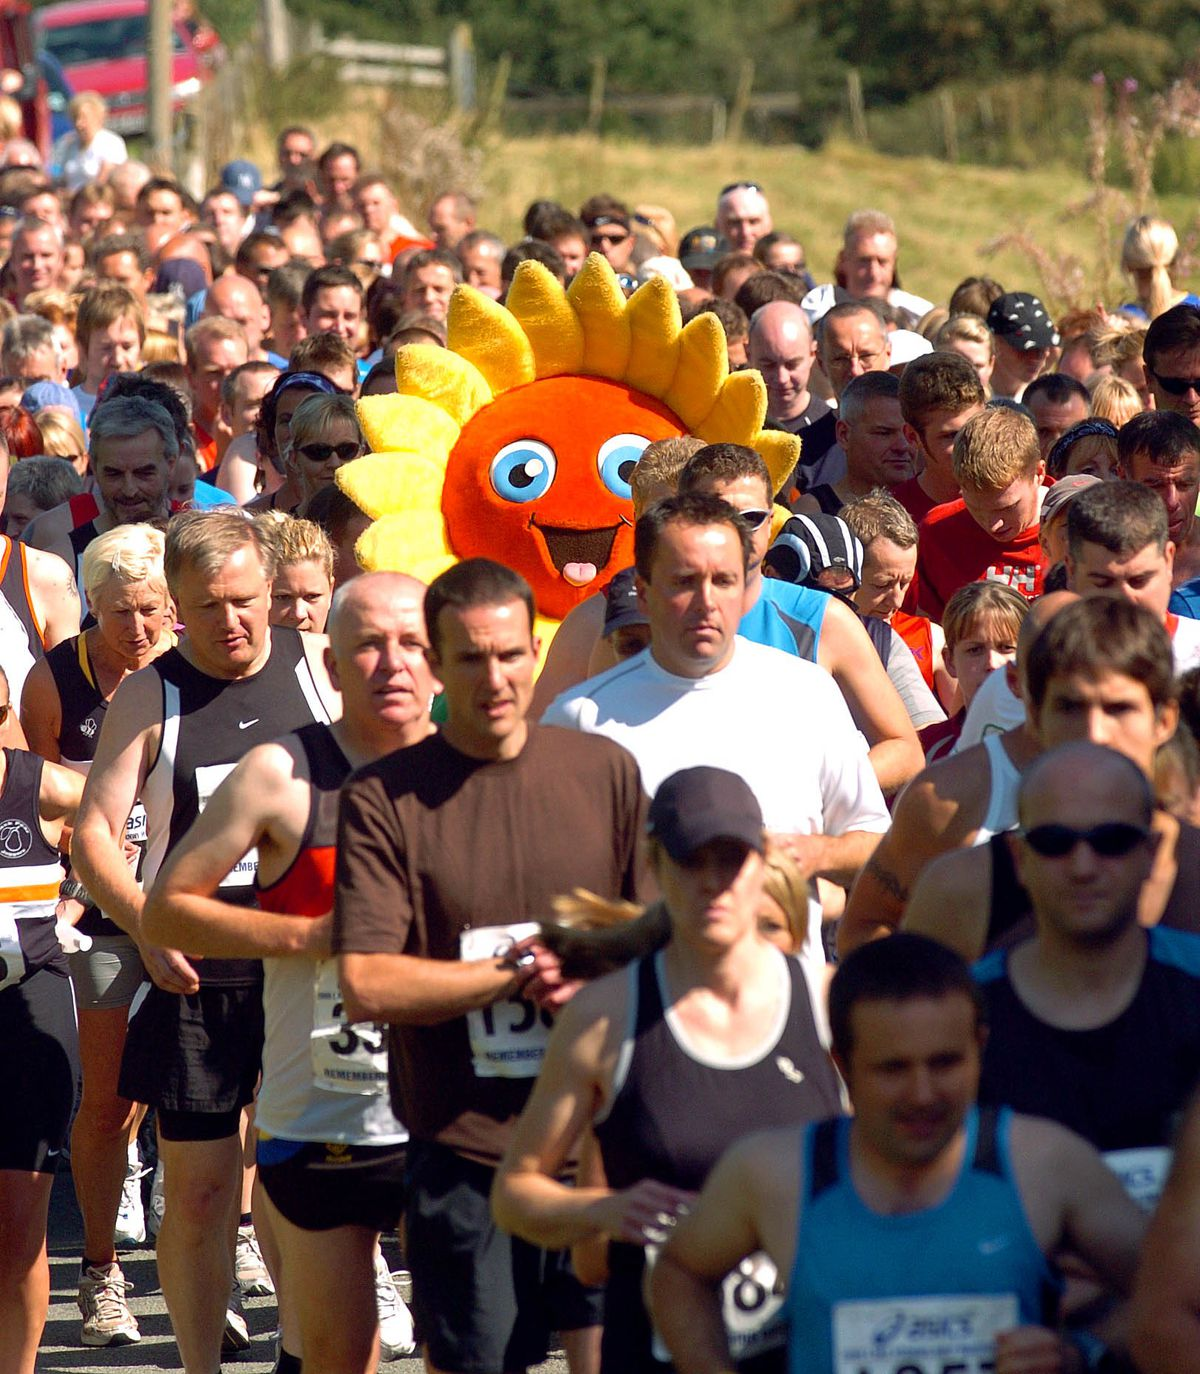 The event has previously attracted around 1,500 runners